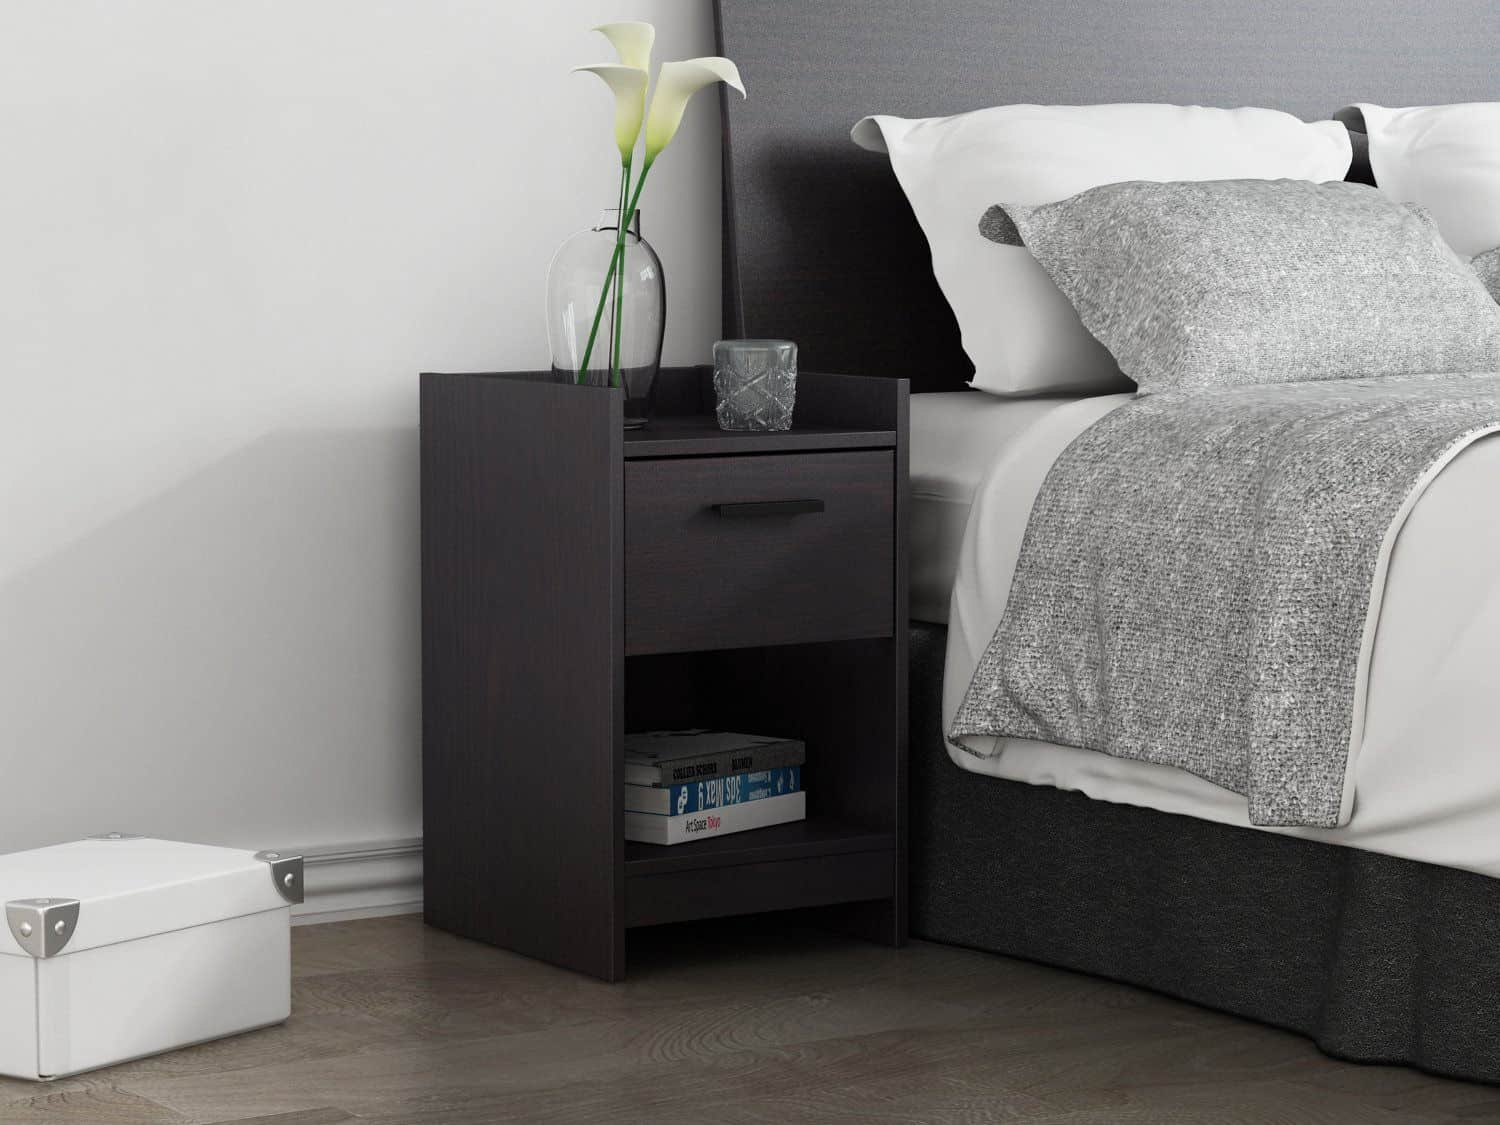 20 excellent small bedside table options for 2018 for How to build a nightstand from scratch